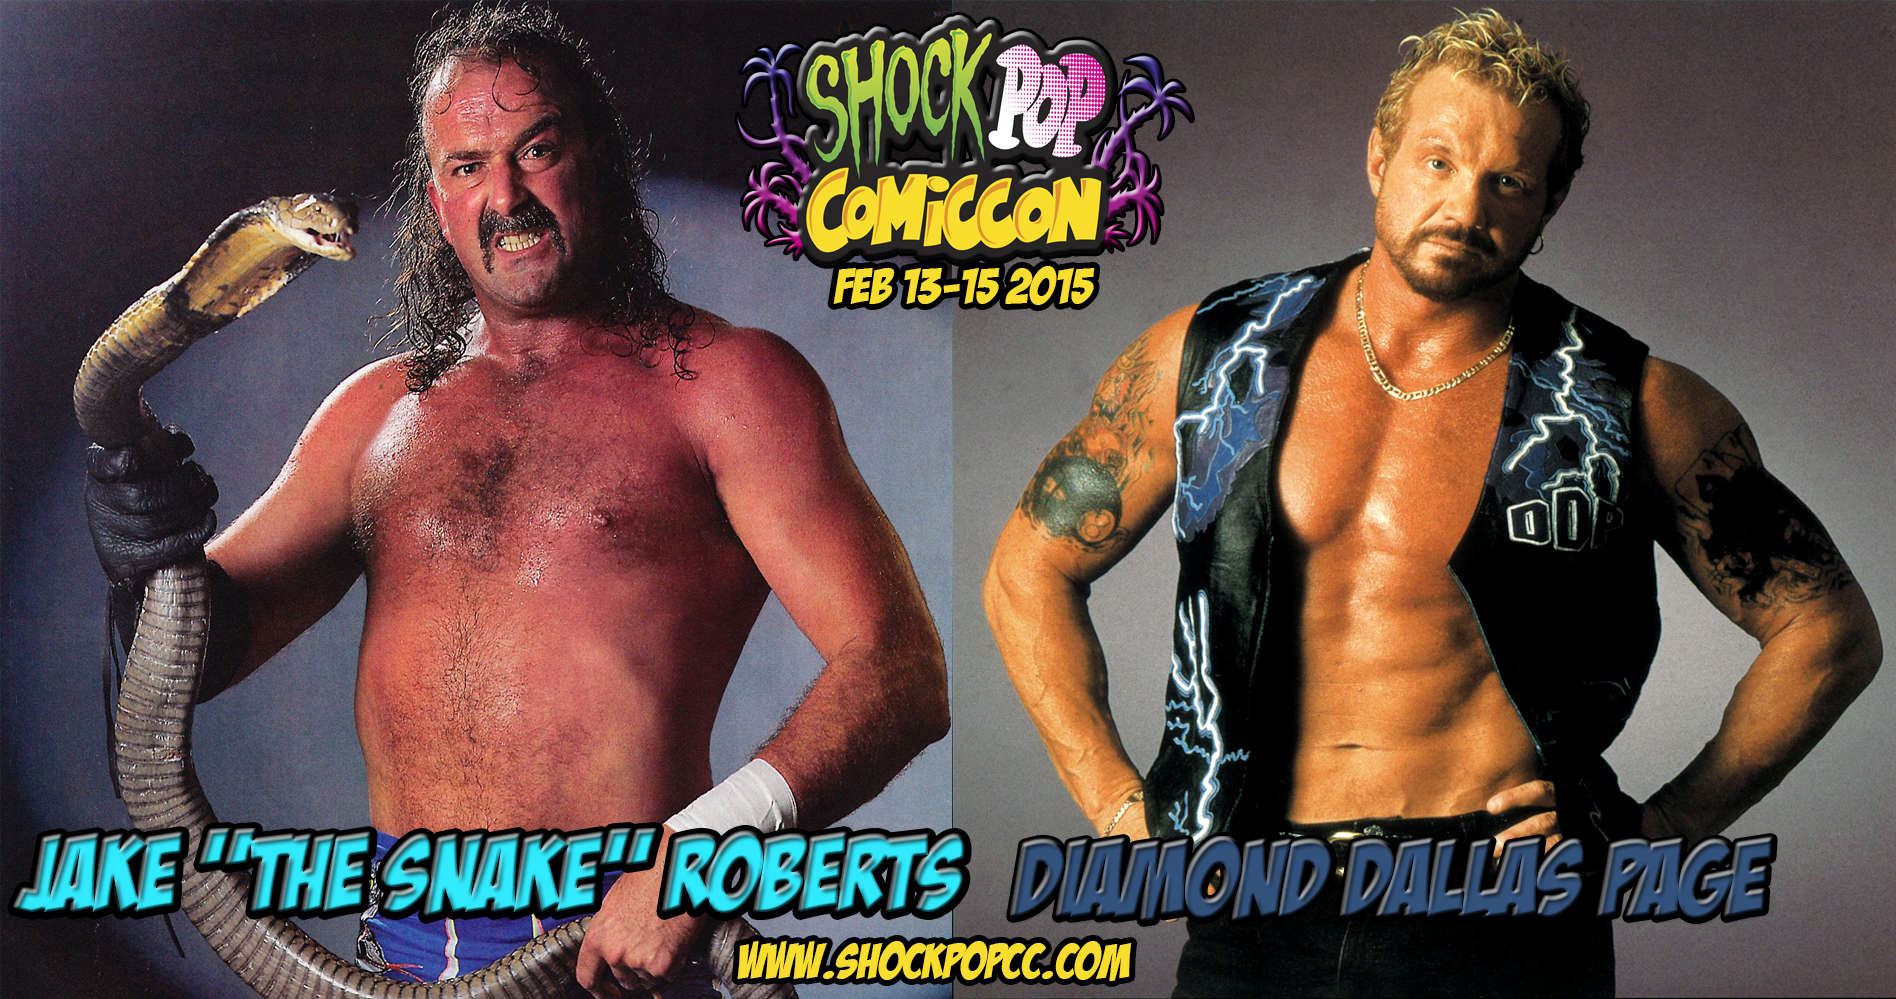 Jake the Snake and DDP